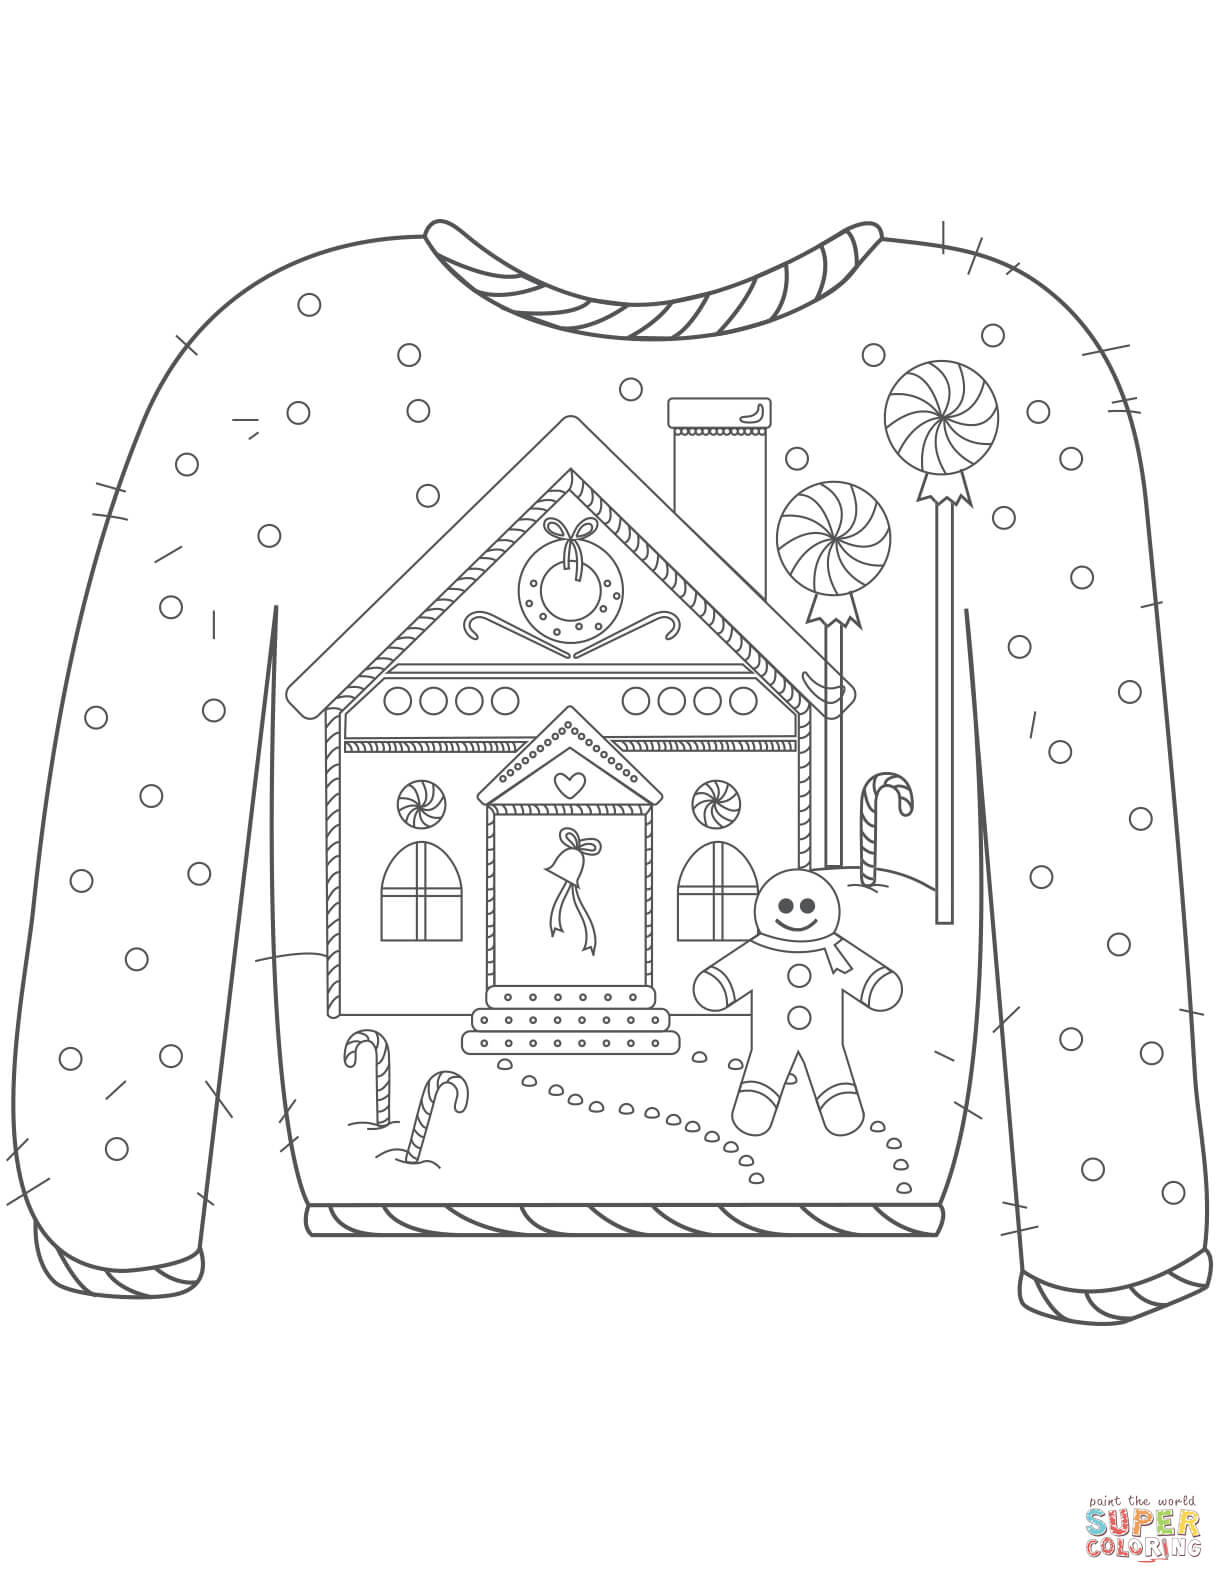 Christmas Ugly Sweater With Gingerbread Man Motif Coloring